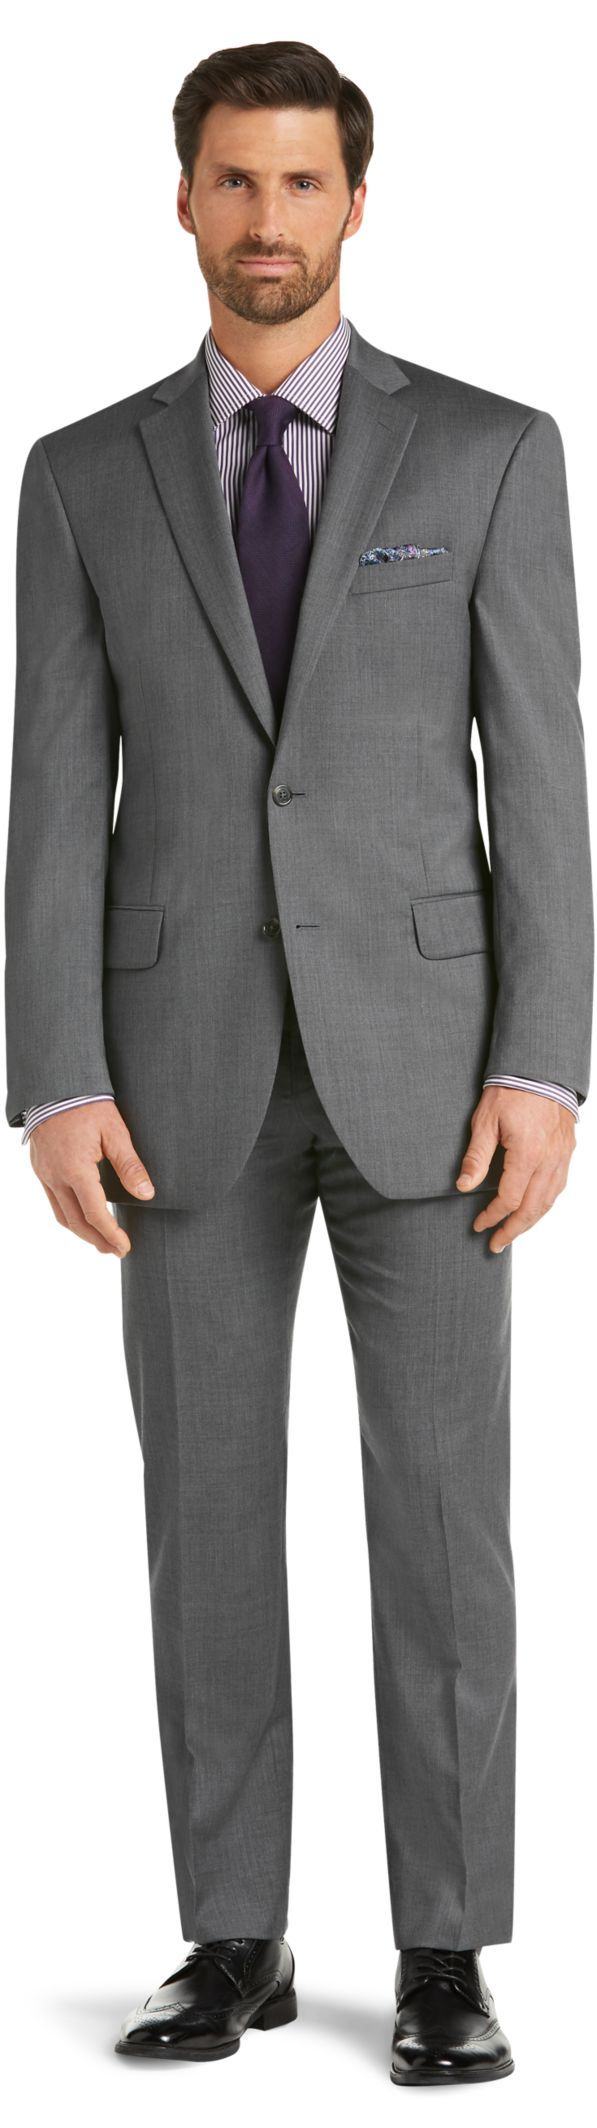 Signature Collection Tradtional Suit Separate Jacket - Big & Tall